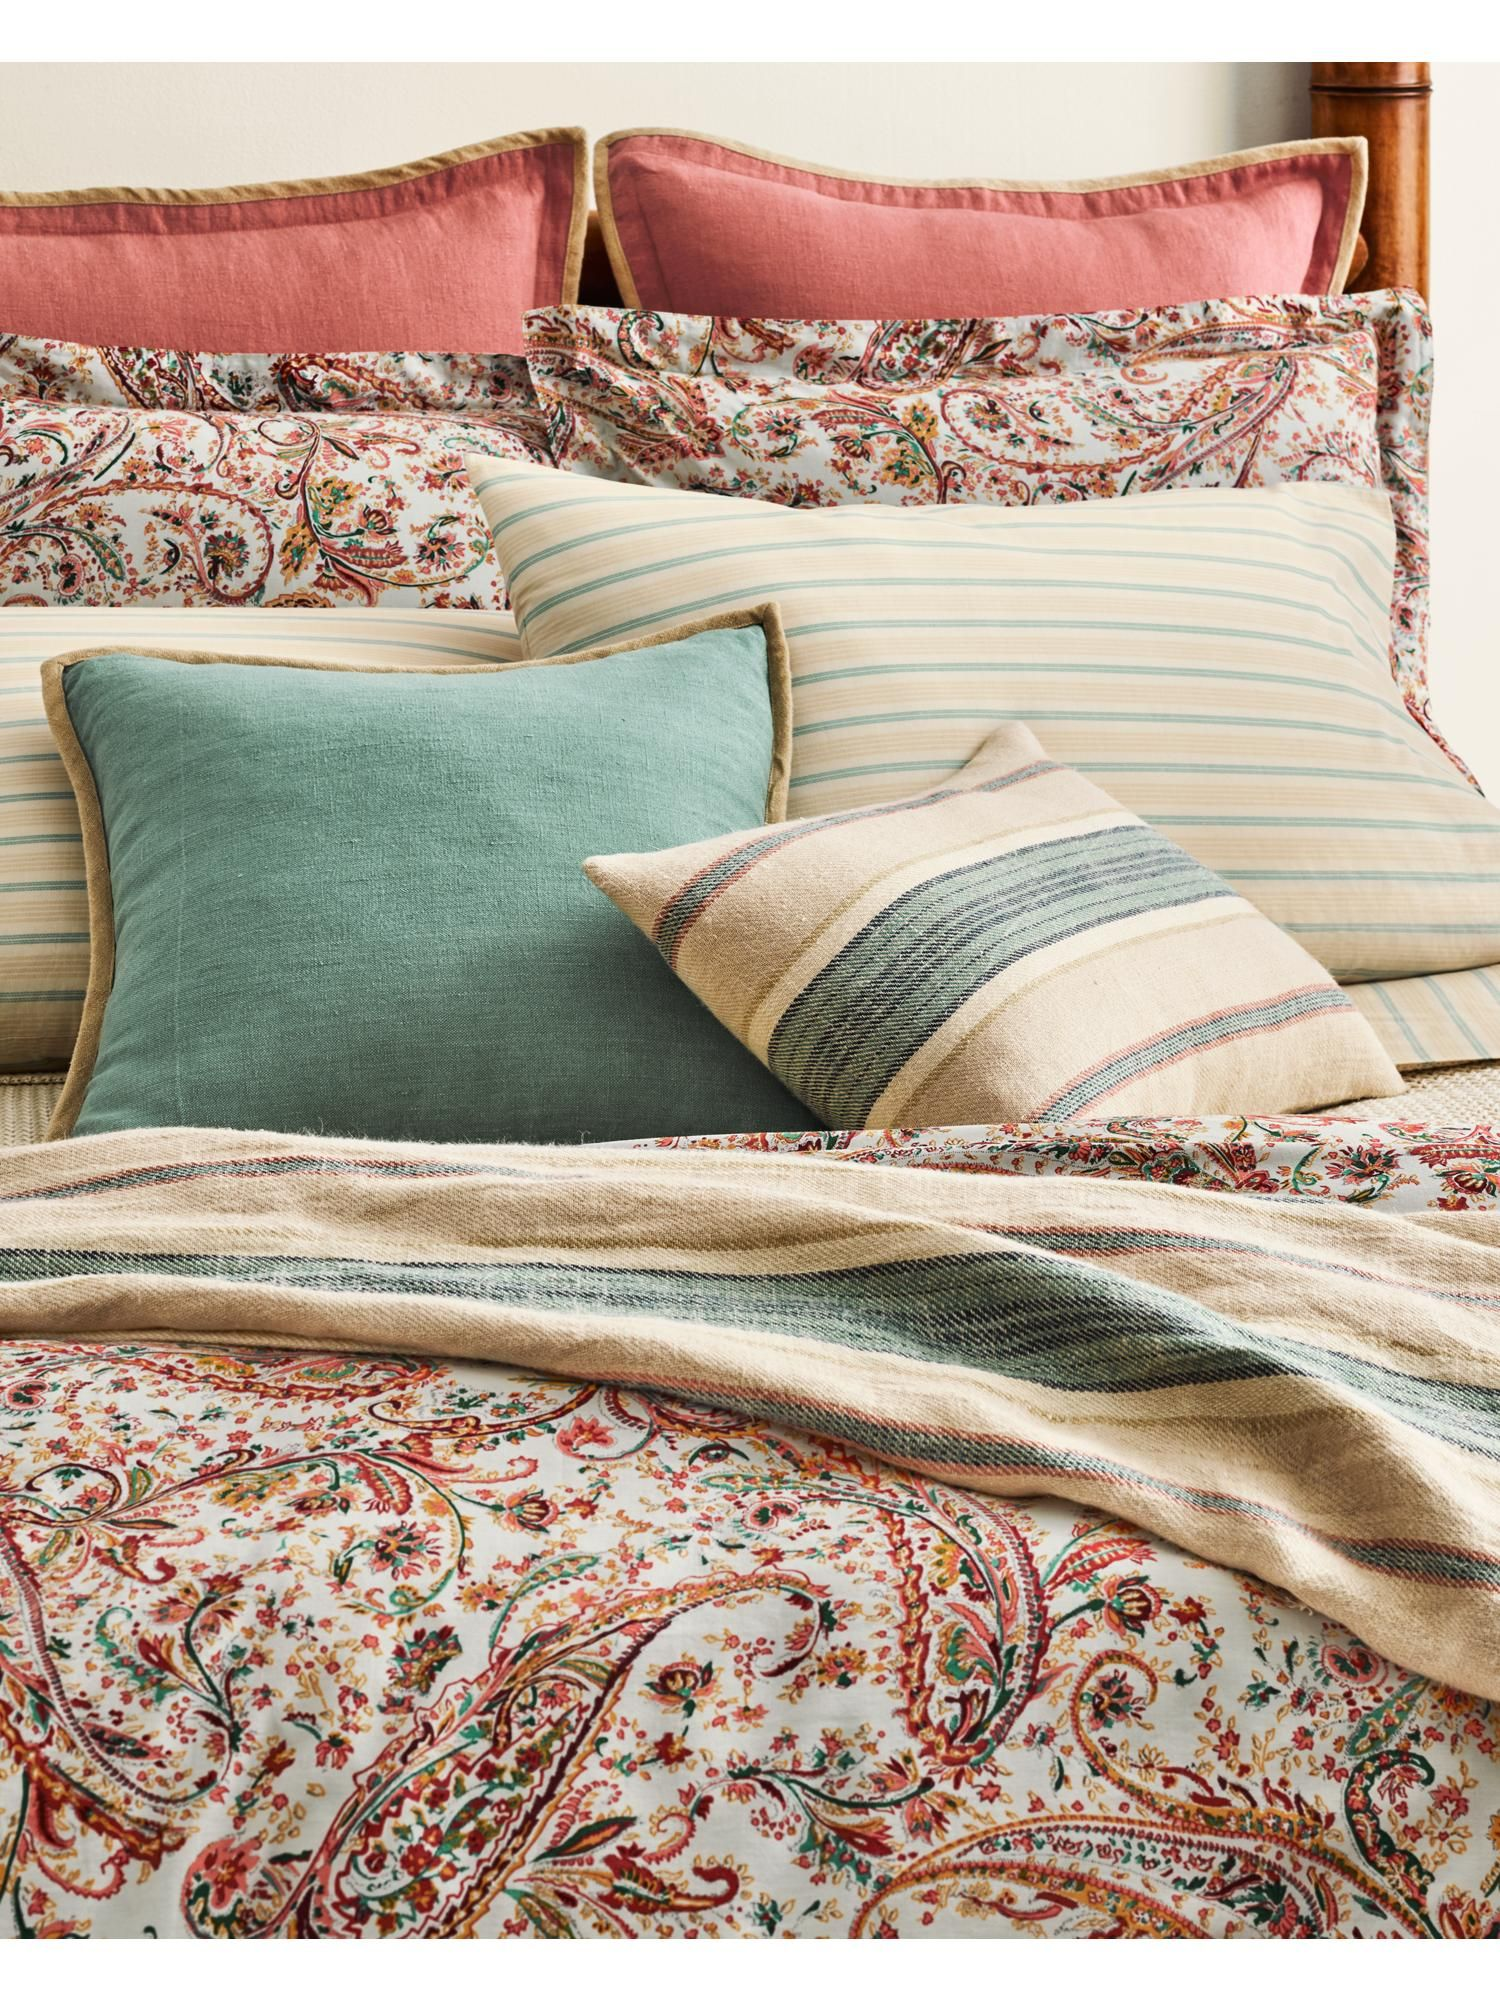 Meubles Fraser Furniture Ralph Lauren Home Montecito Duvet Cover At House Of Fraser